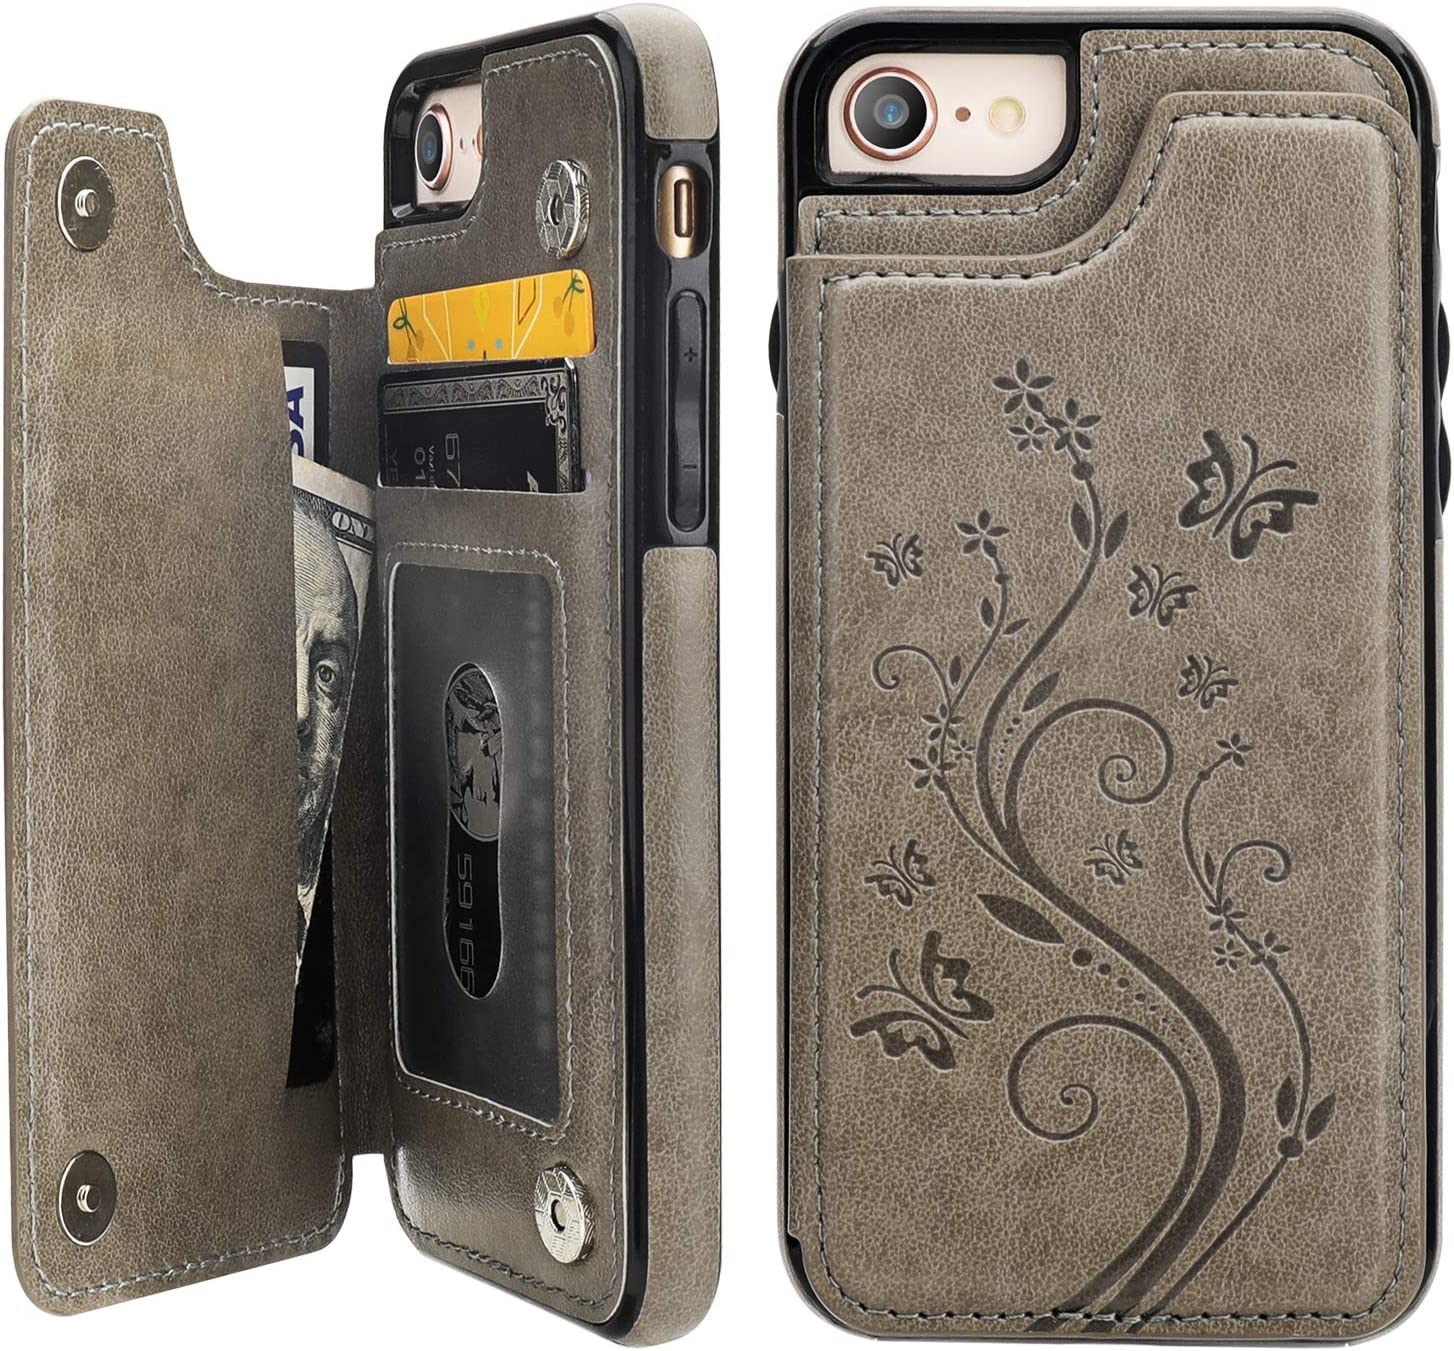 Vaburs iPhone 7 iPhone 8 iPhone SE 2020 Case Wallet with Card Holder, Embossed Butterfly Premium PU Leather Double Magnetic Buttons Flip Shockproof Protective Cover for iPhone 7/8/SE 2020 Case(Gray)